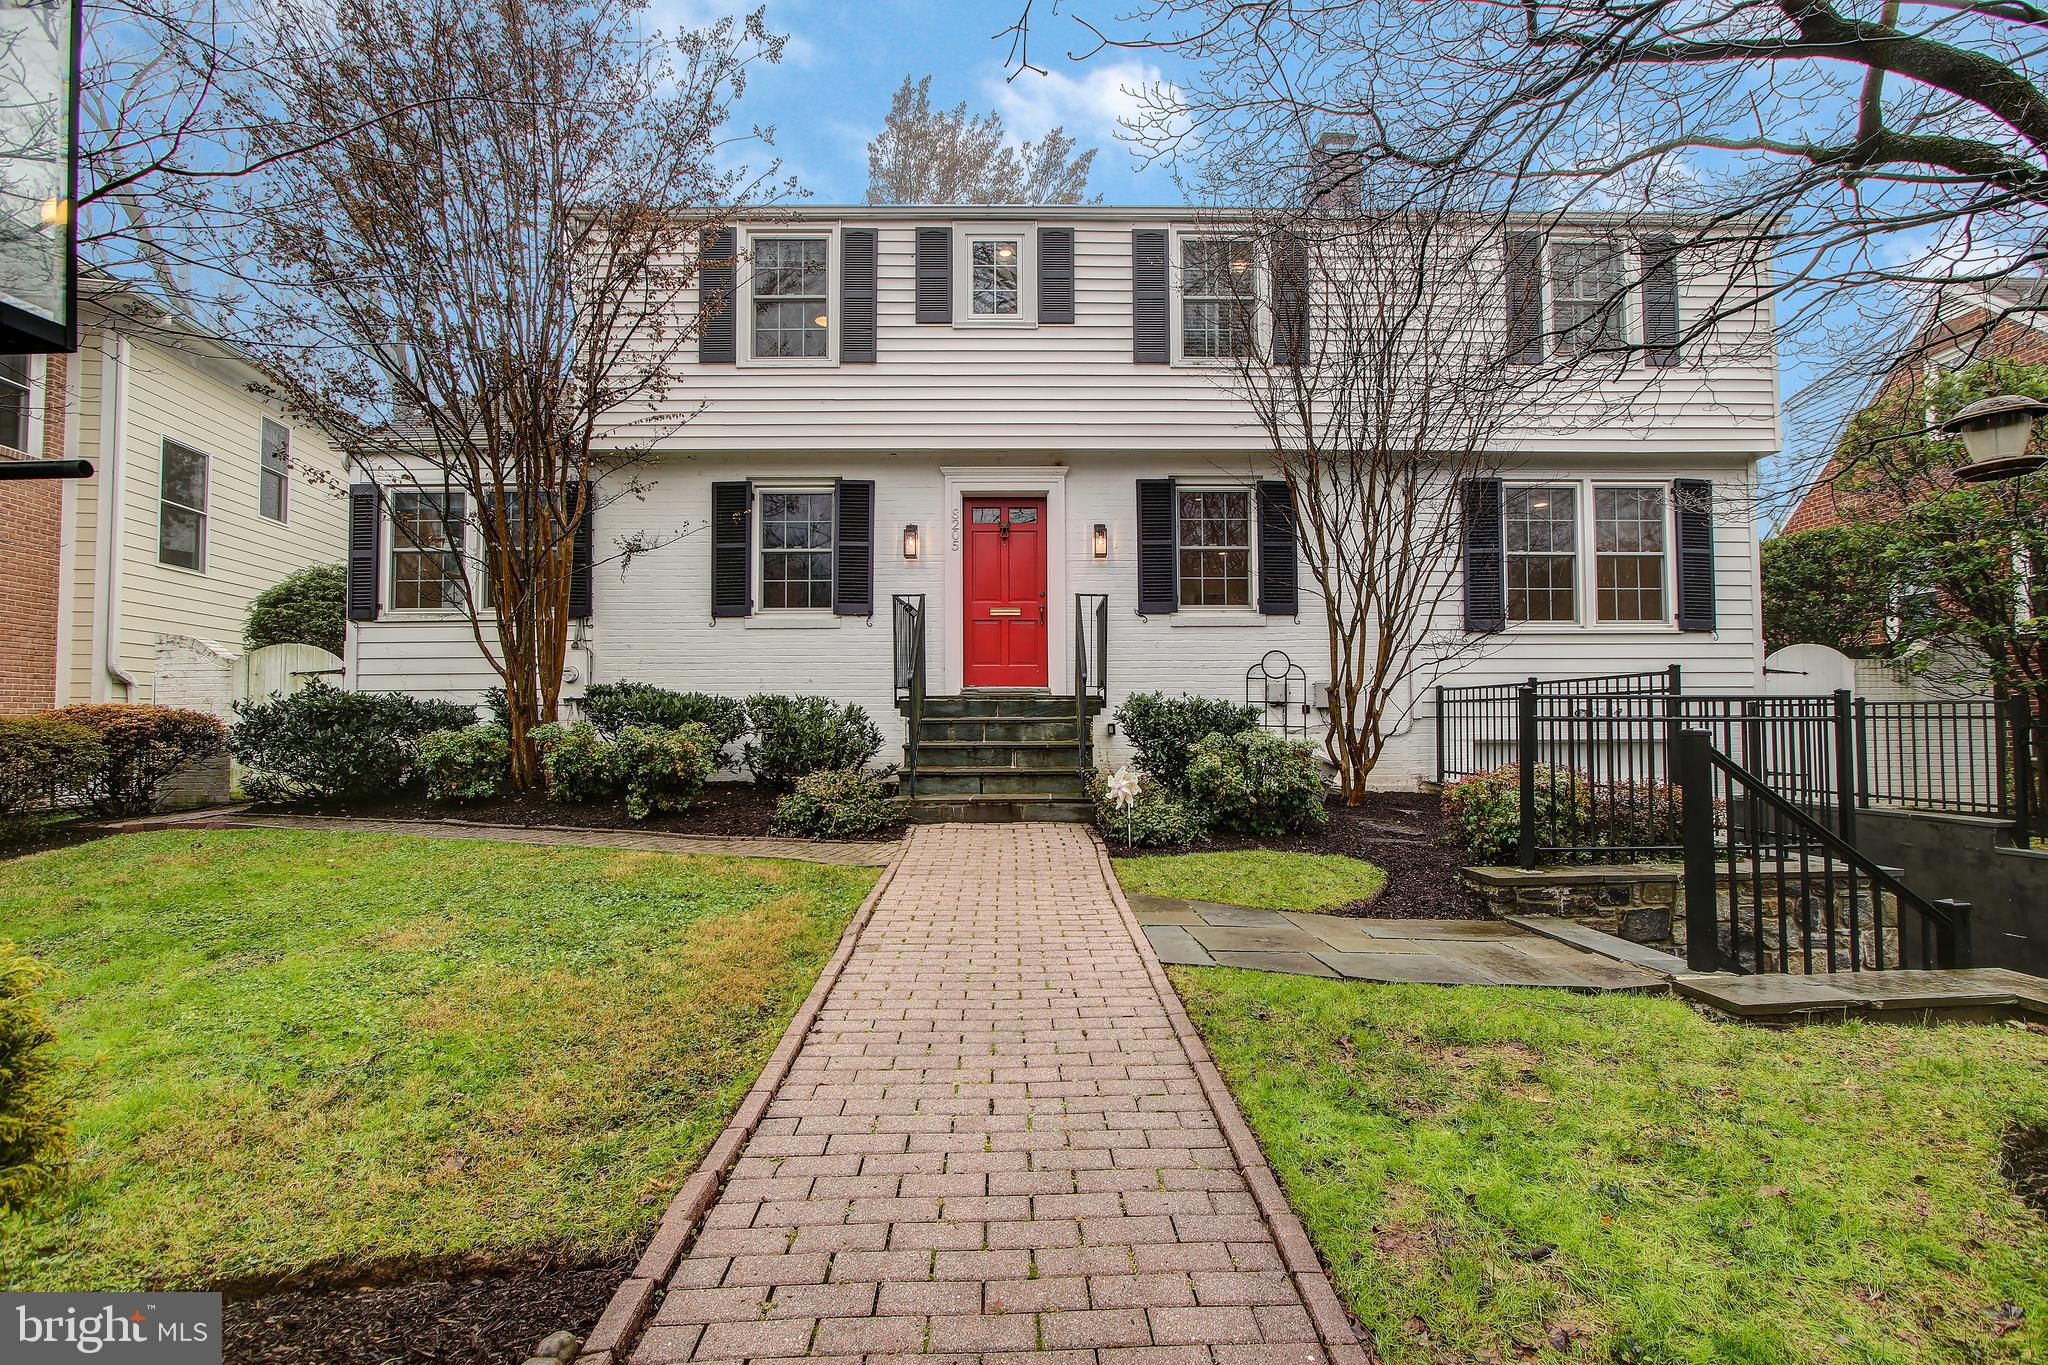 8205 MAPLE RIDGE ROAD, BETHESDA, MD 20814